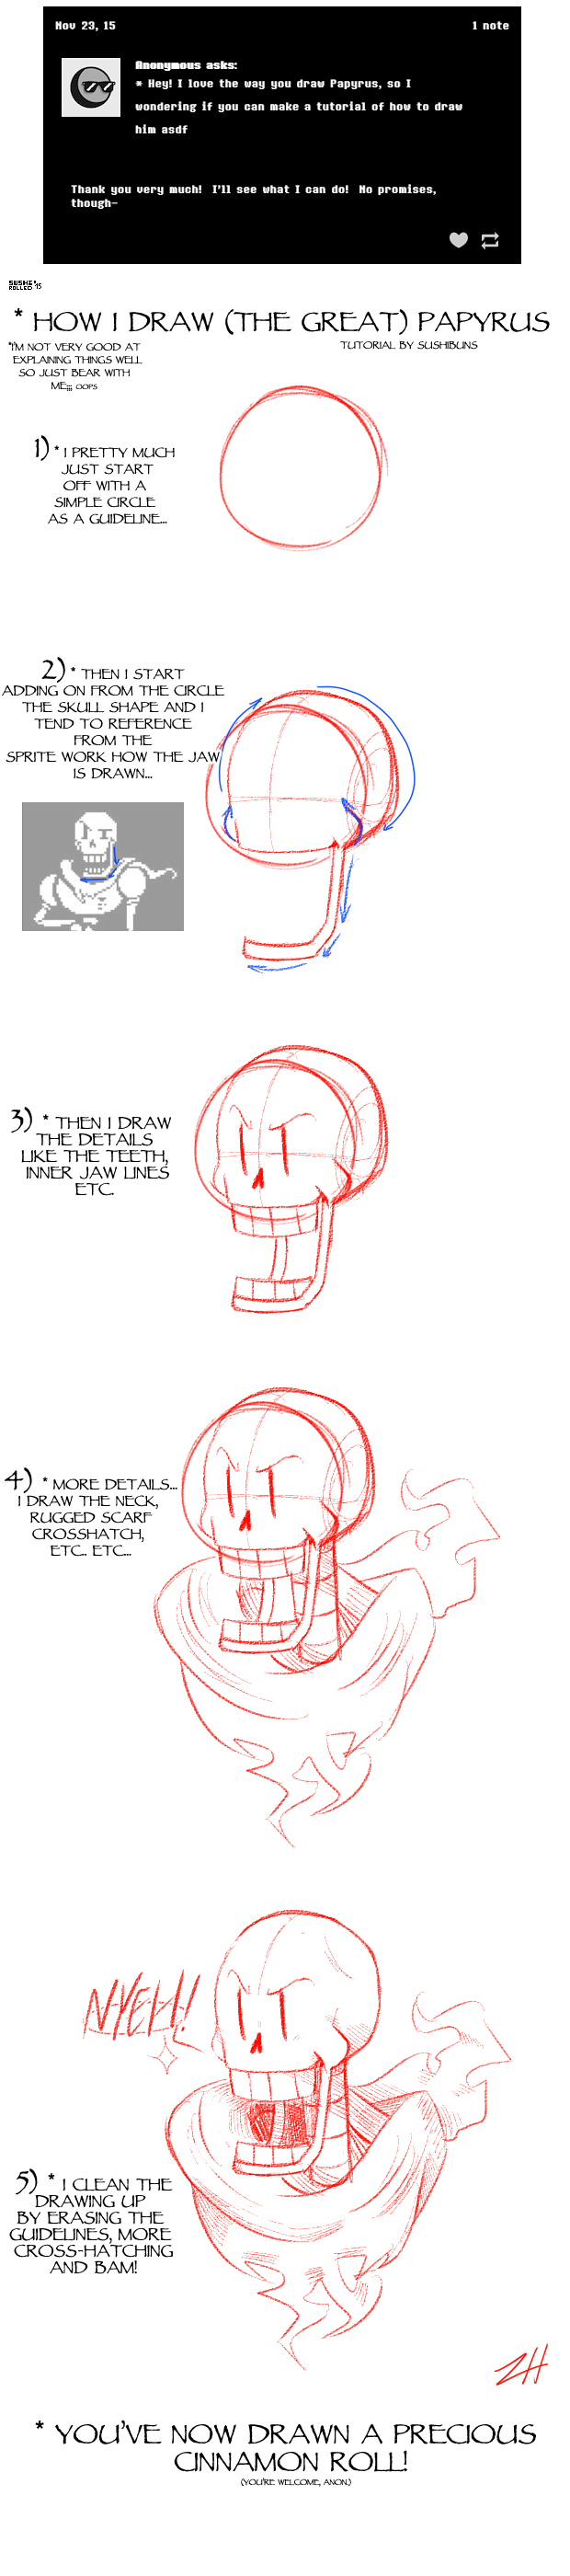 How I draw (The Great) Papyrus by Sushirolled on DeviantArt